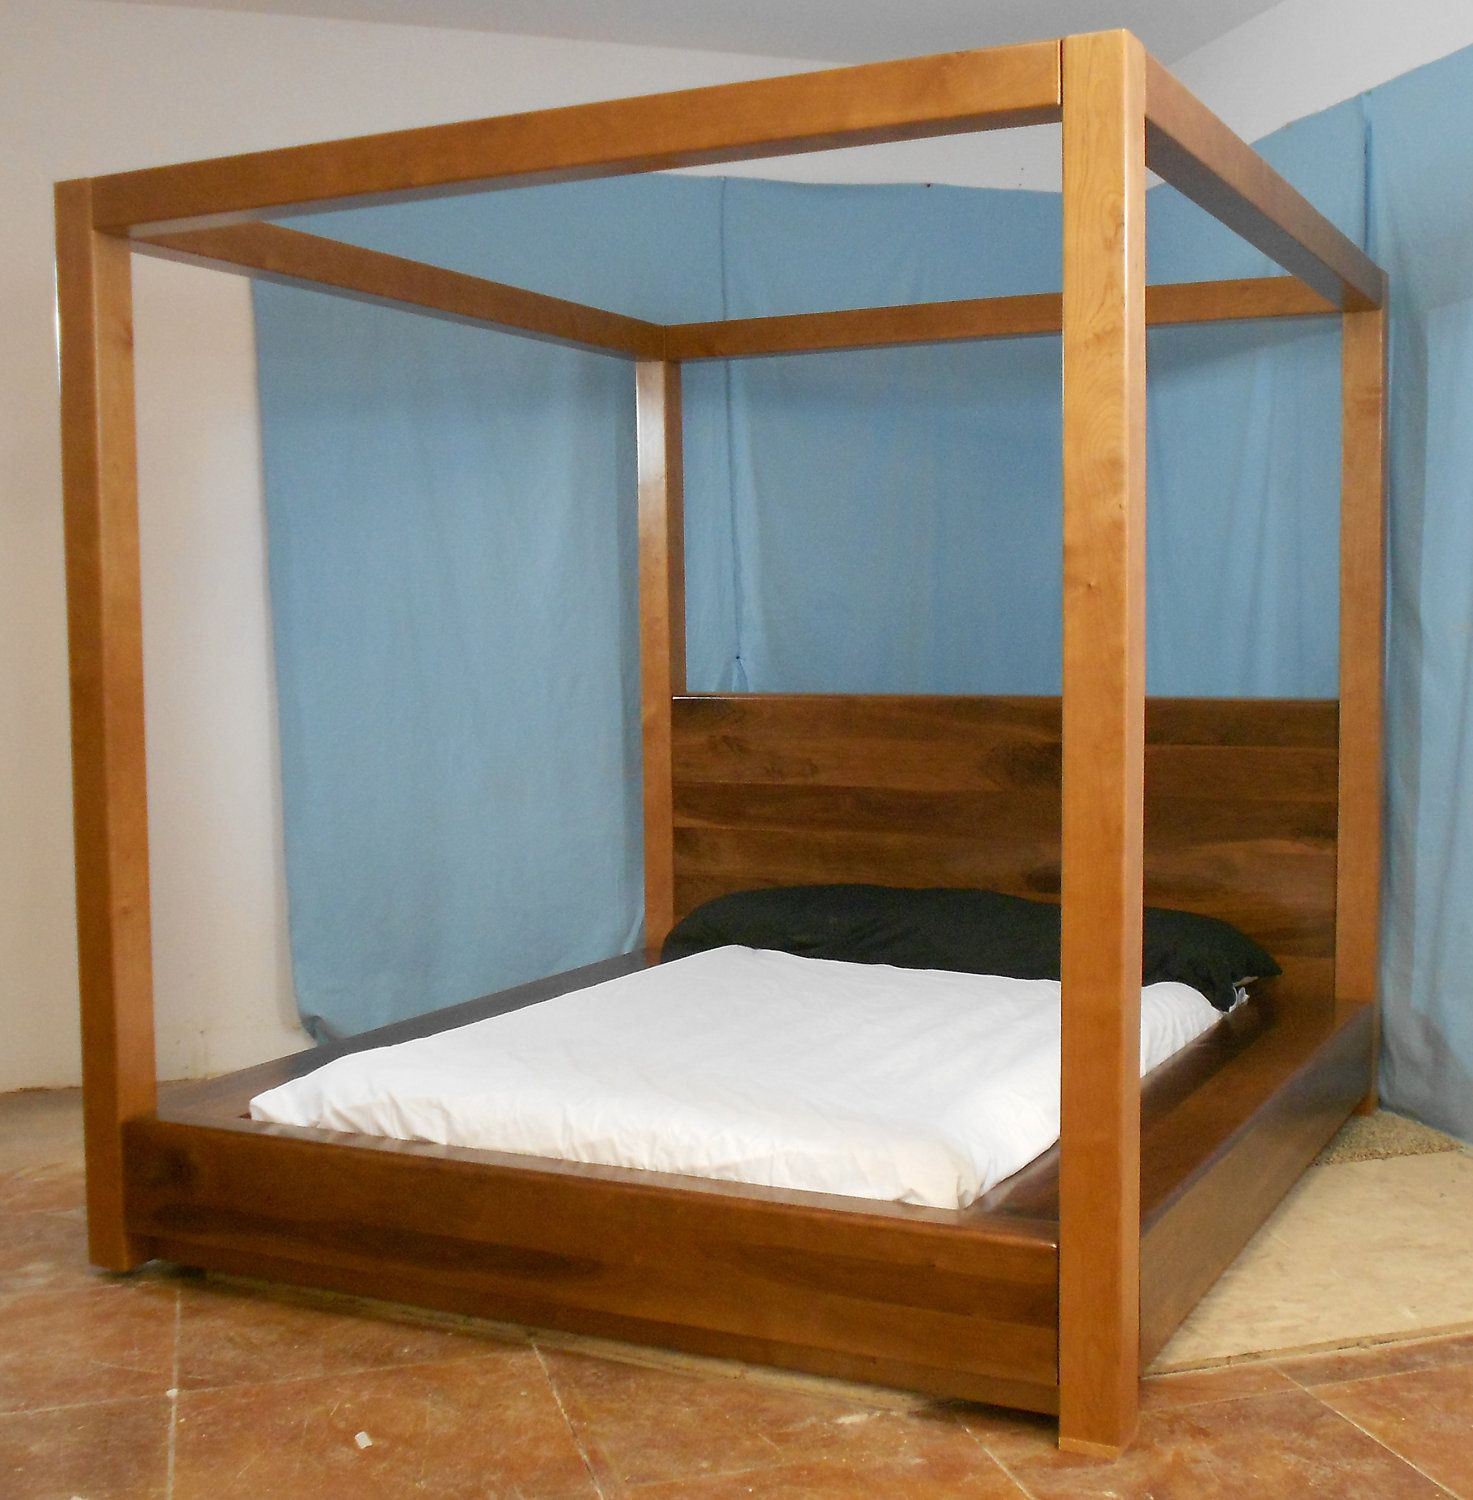 Best 1 745 00 Danish Modern Canopy Bed Wood Canopy Bed 400 x 300